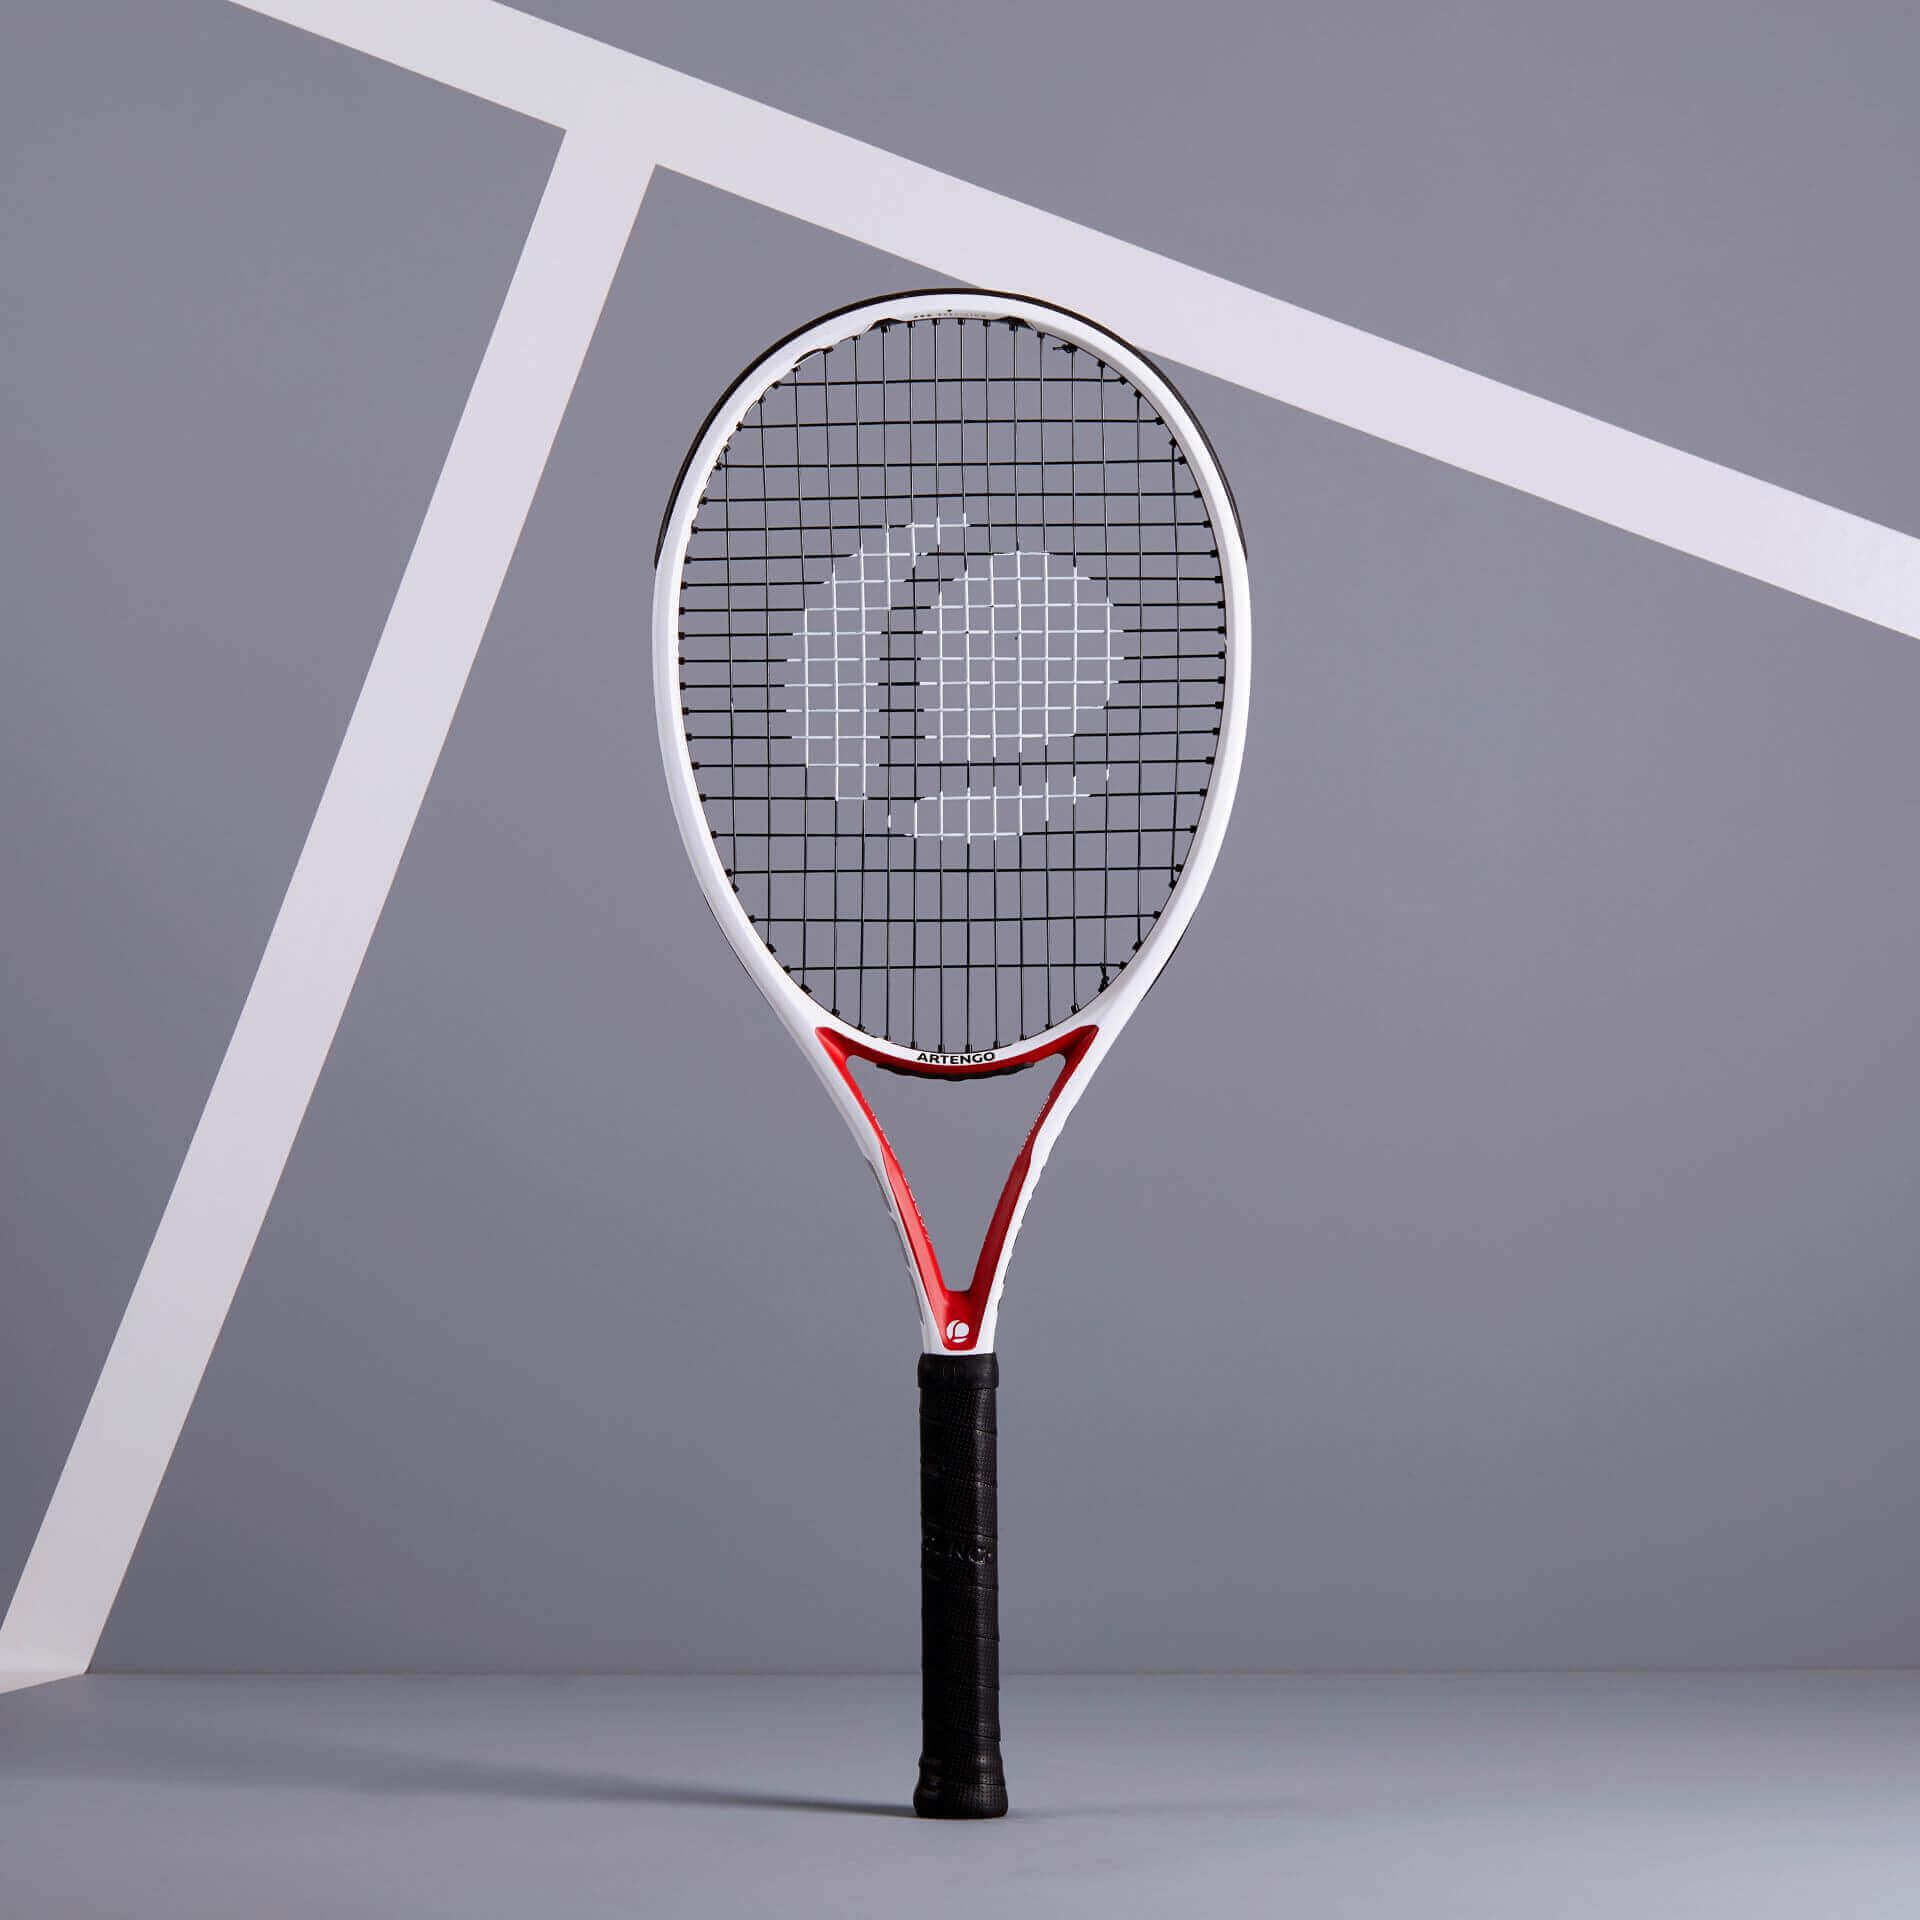 Find the Right Racquet Weight for You